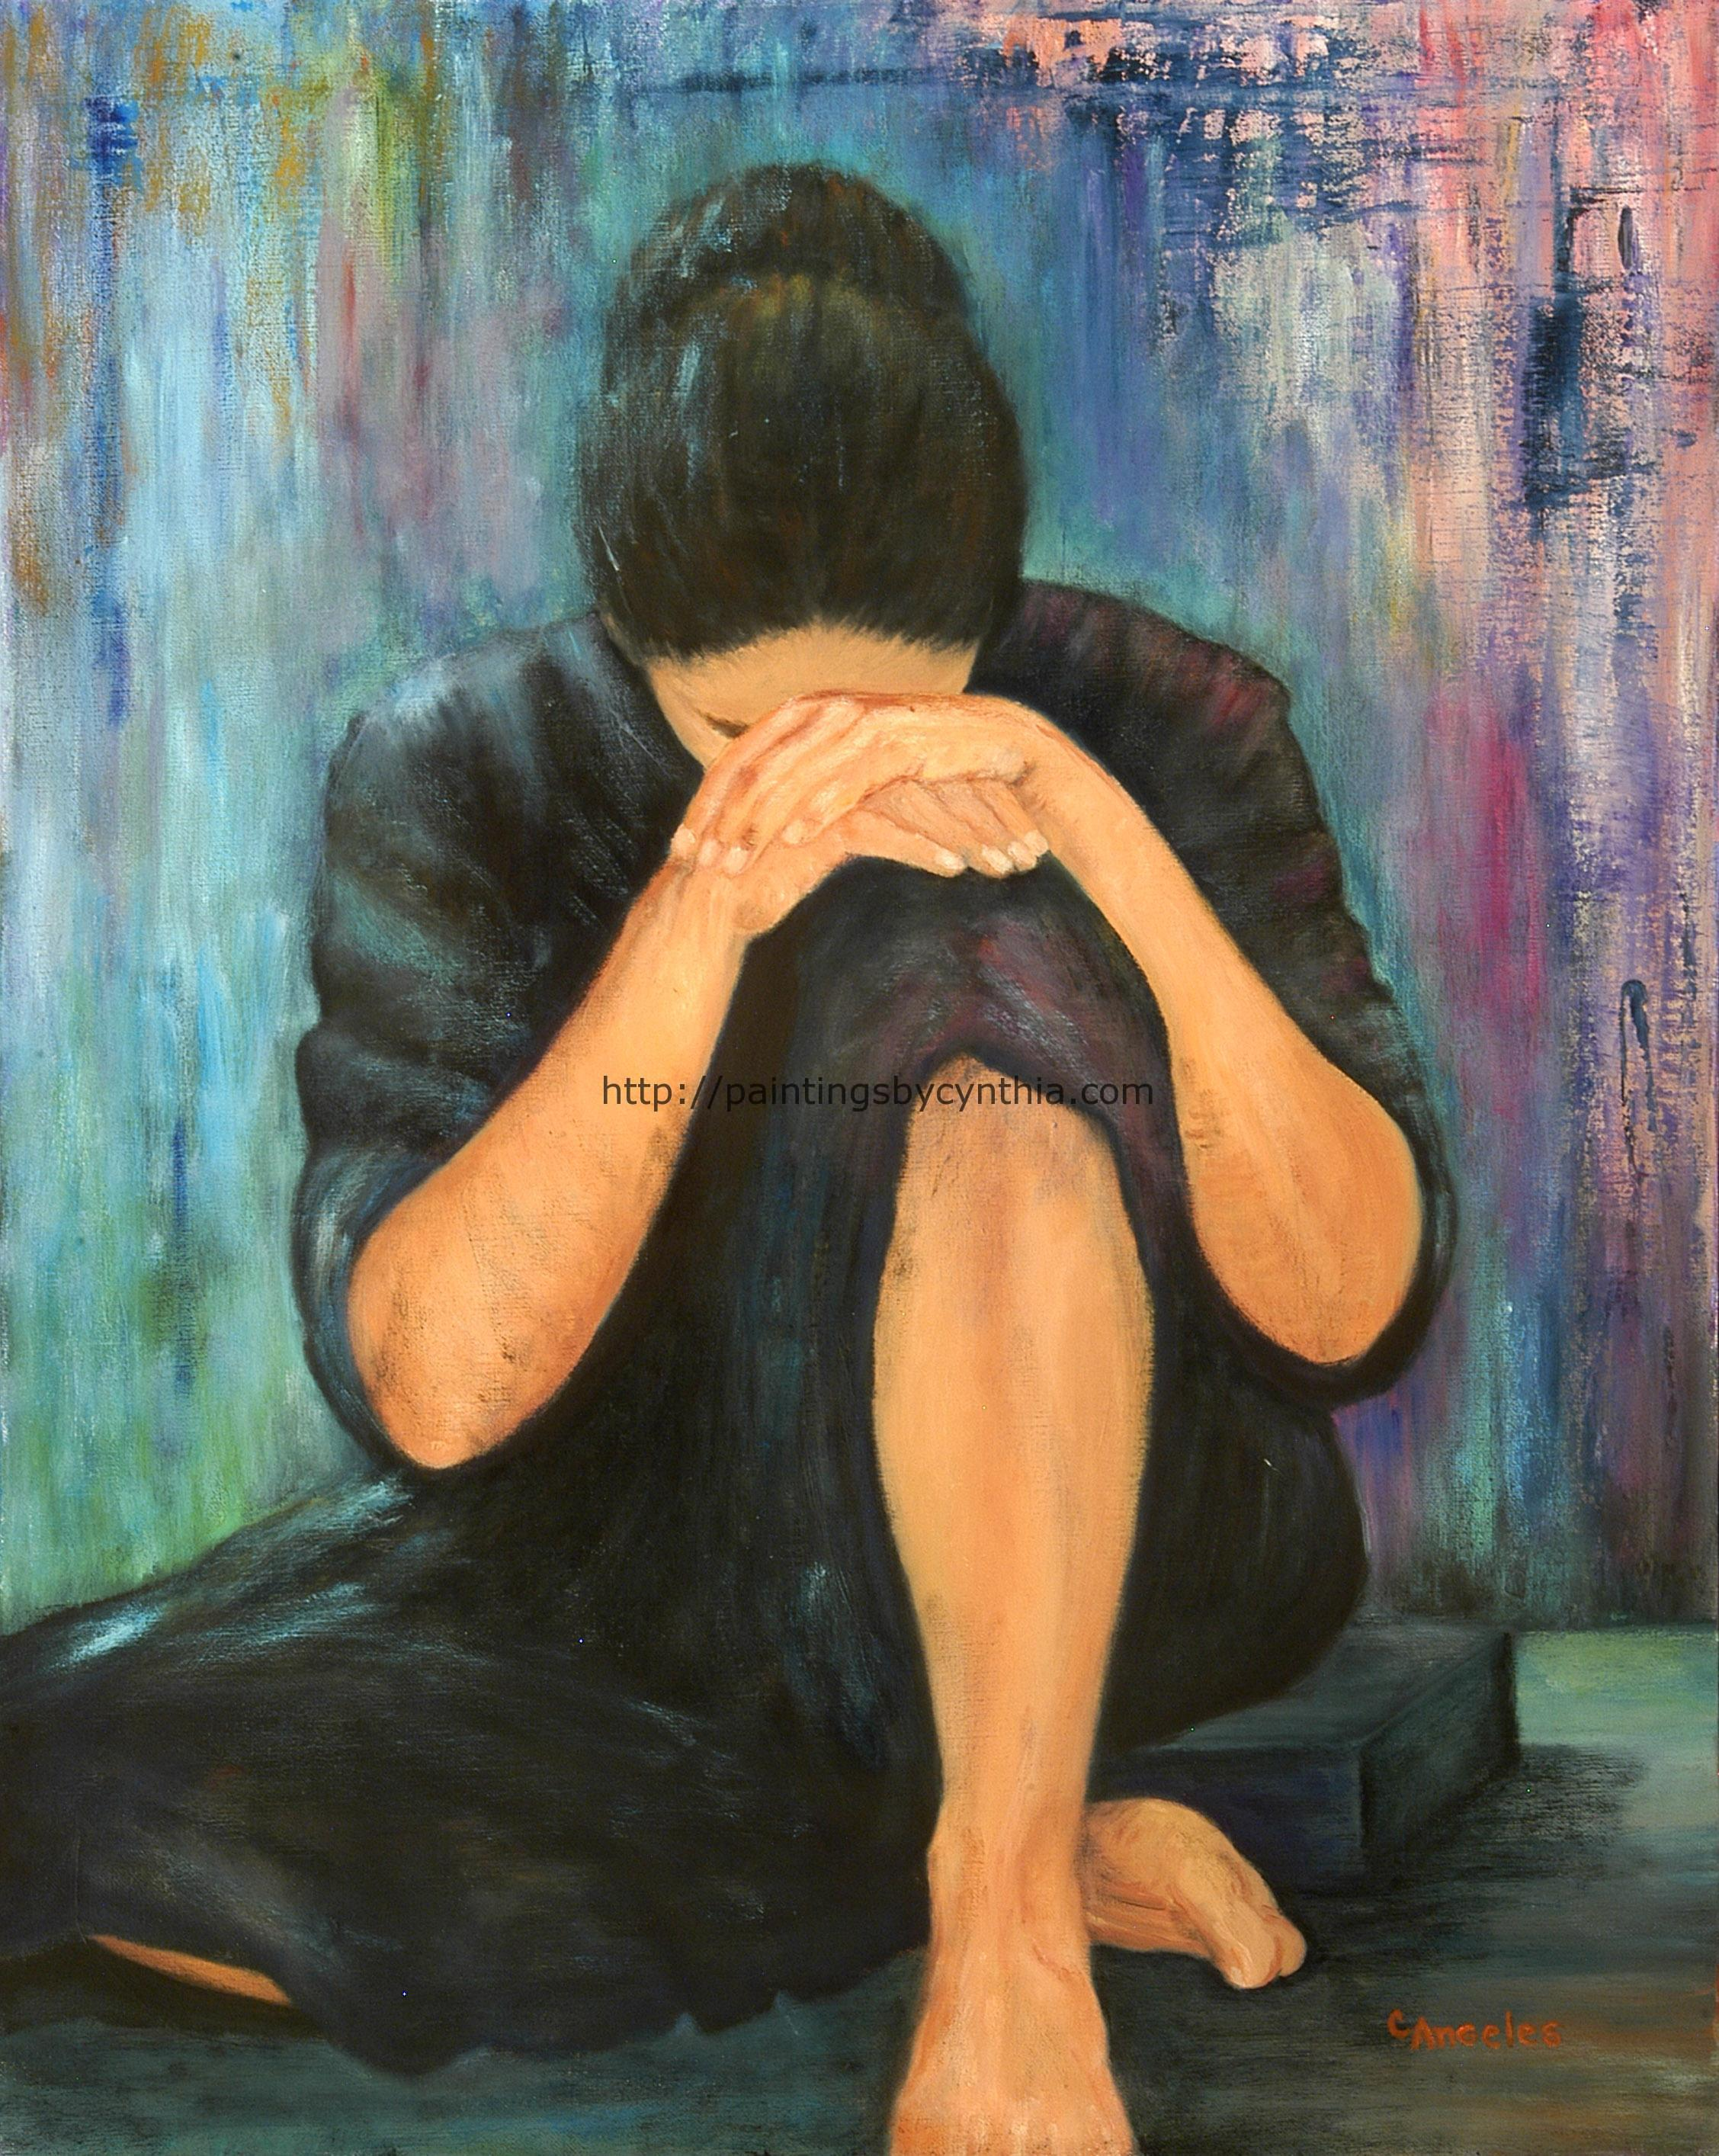 Death, Grief, Loss cover image